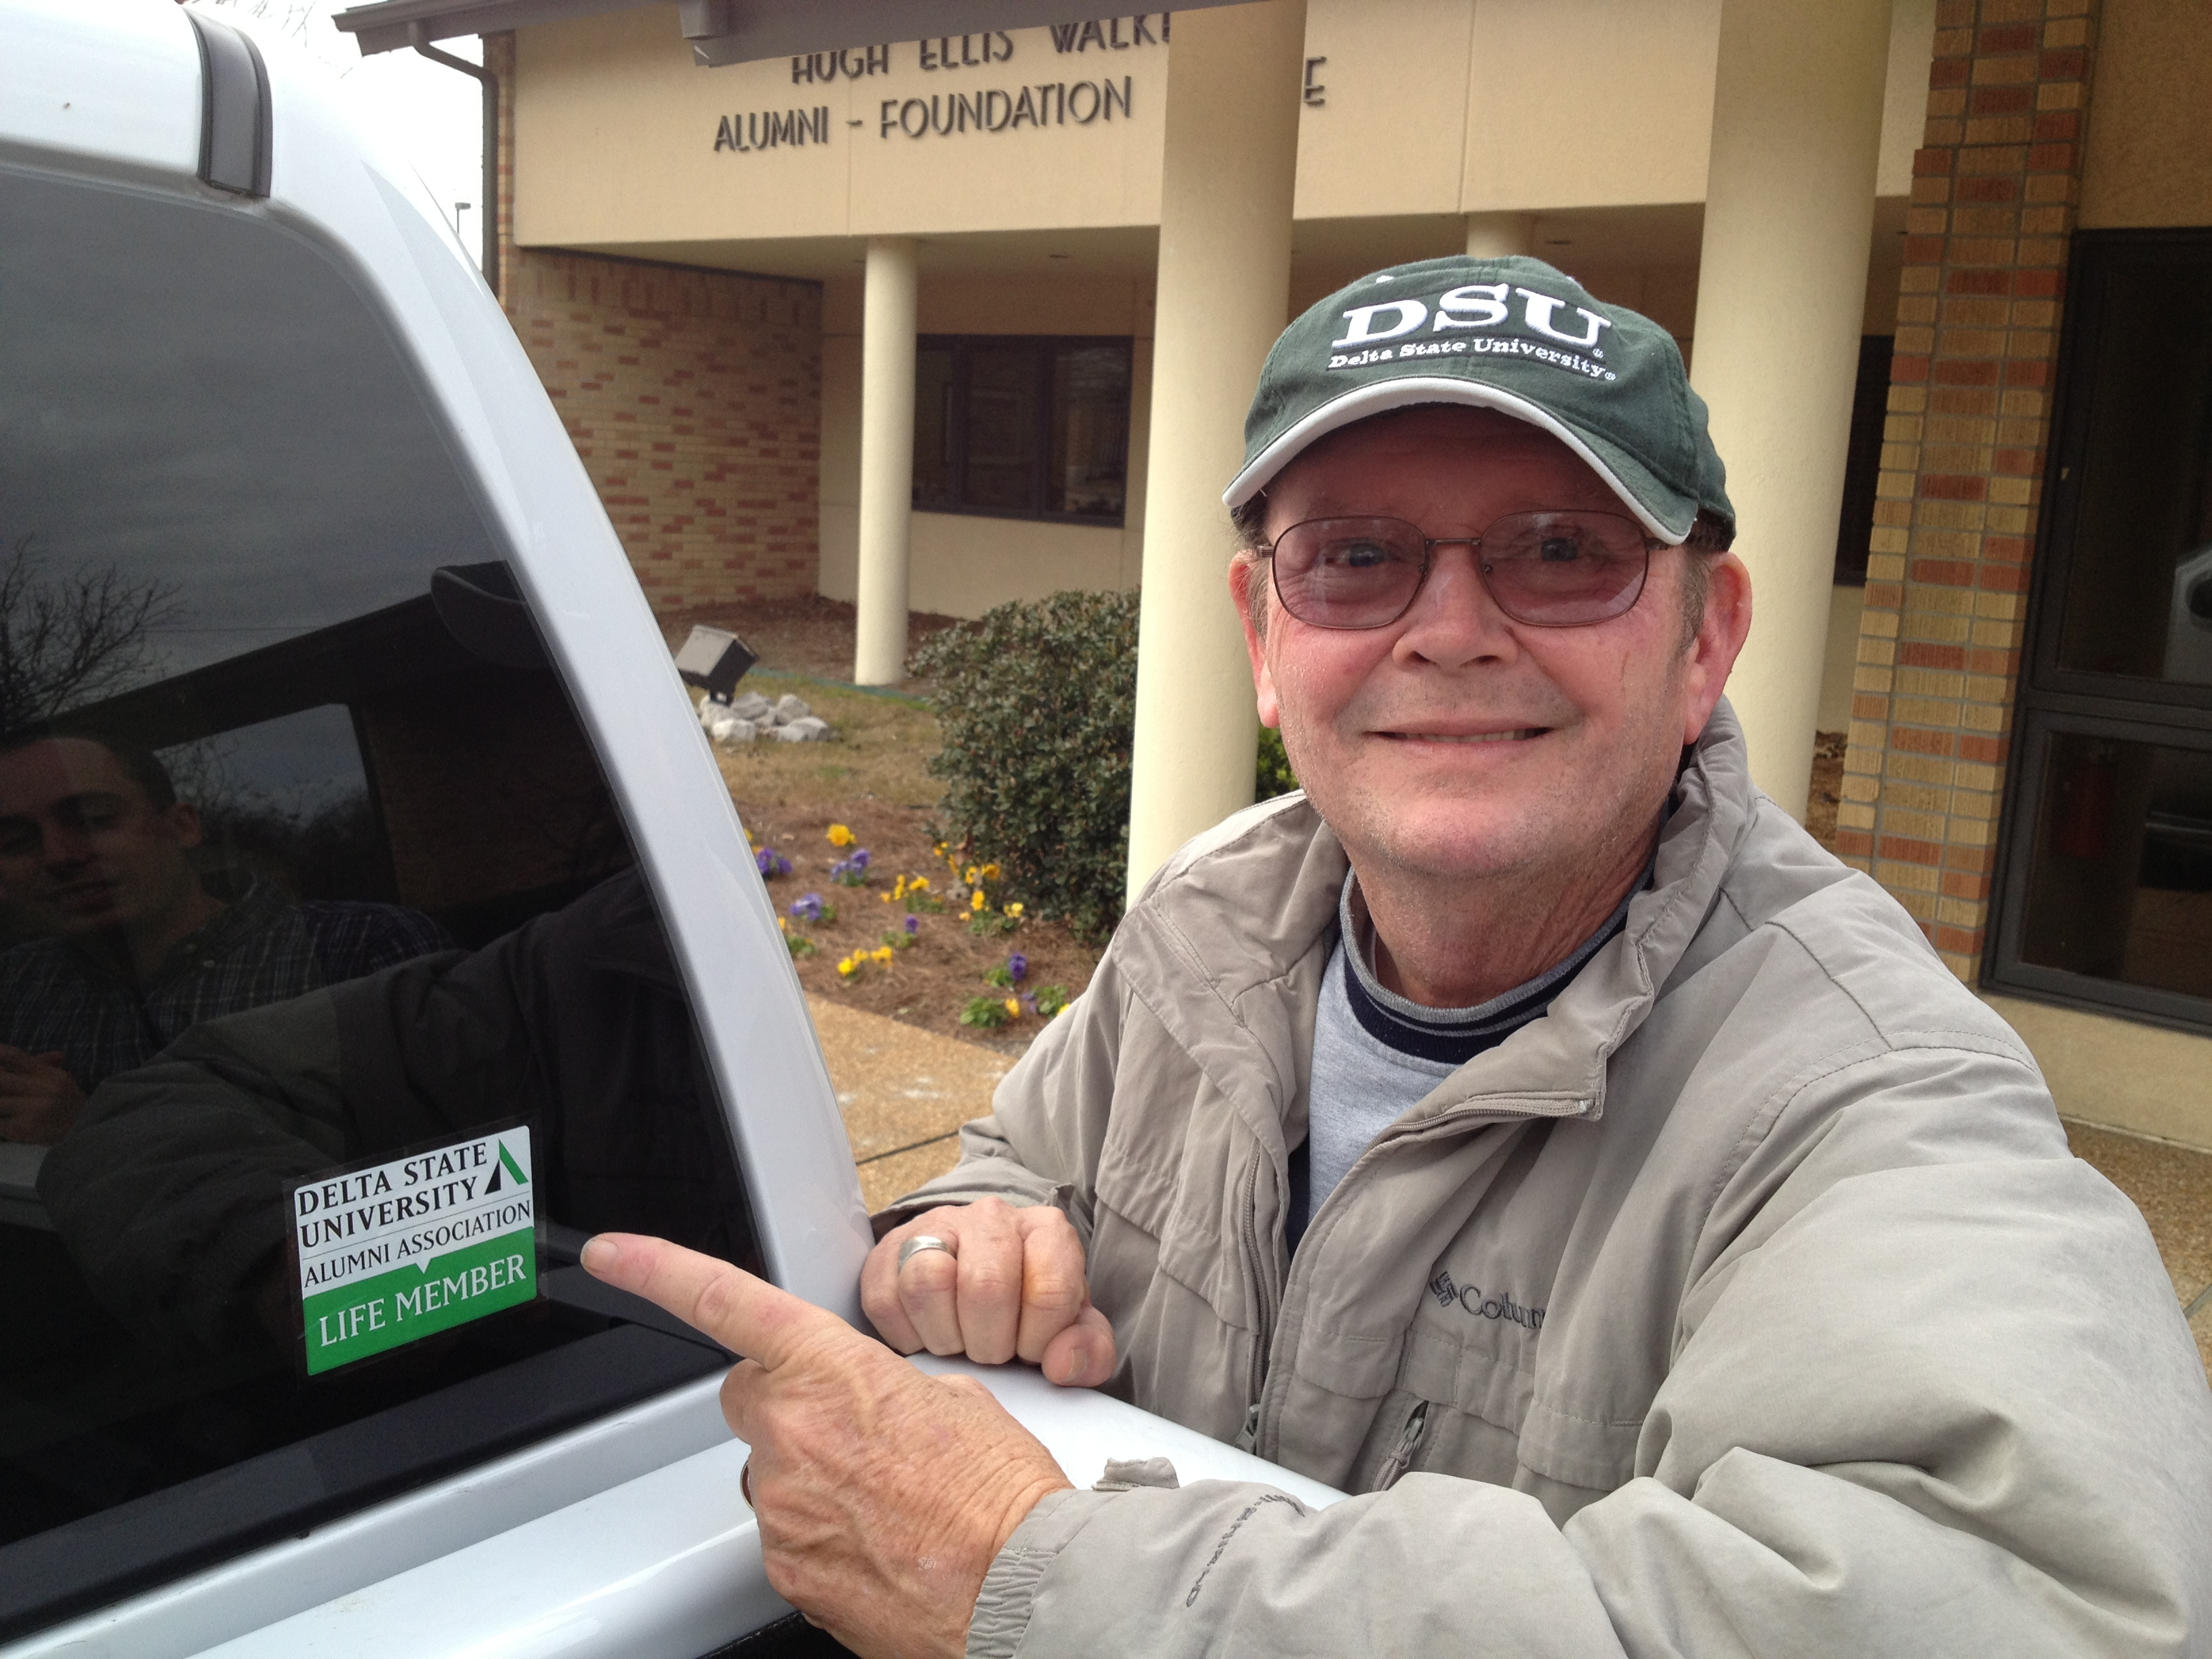 Photo: James Donald Cooper ('63), Registrar Emeritus, shows off his DSU Alumni Association Life Member Decal.